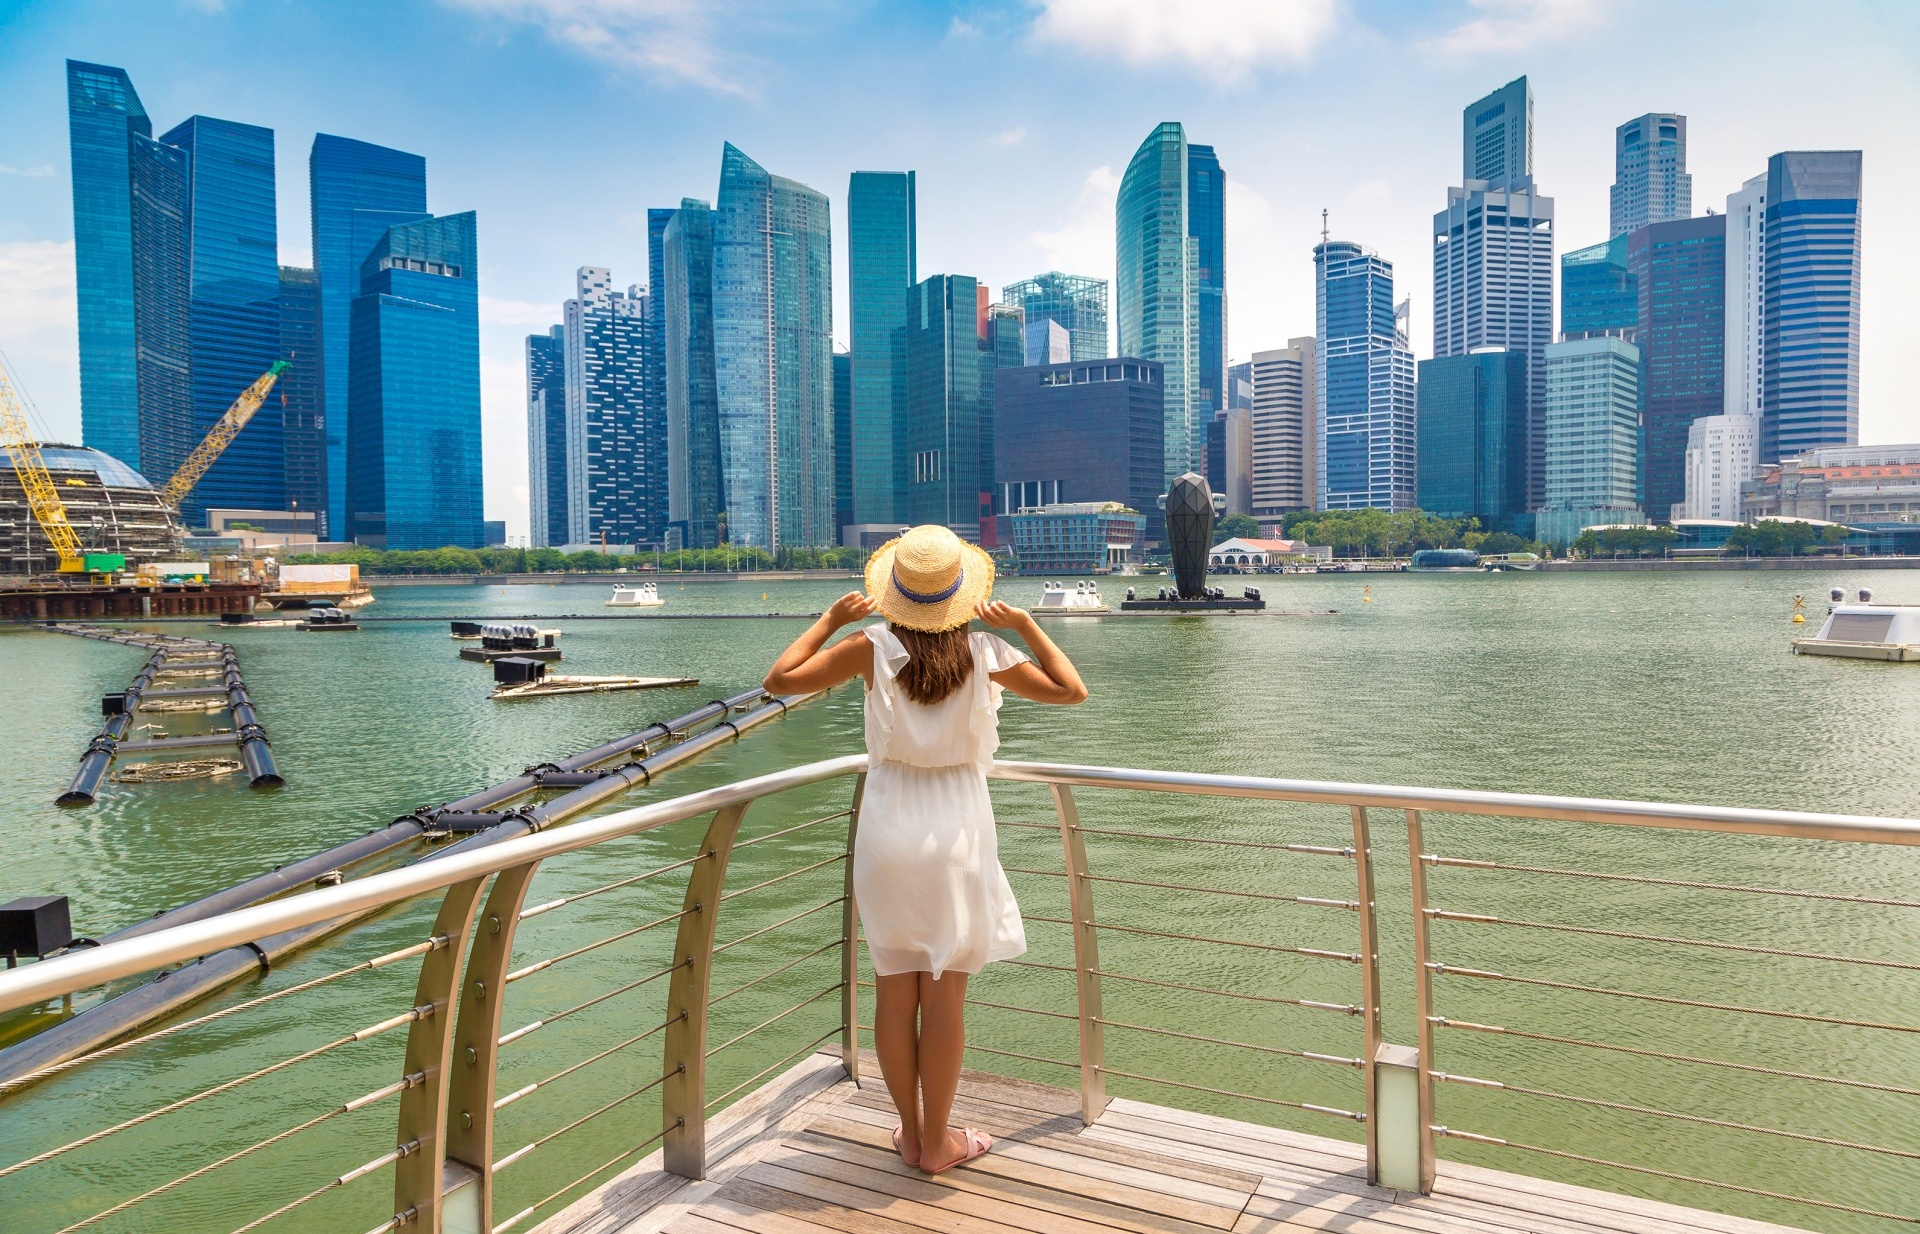 HSBC survey: Global expats show resilience and optimism for future